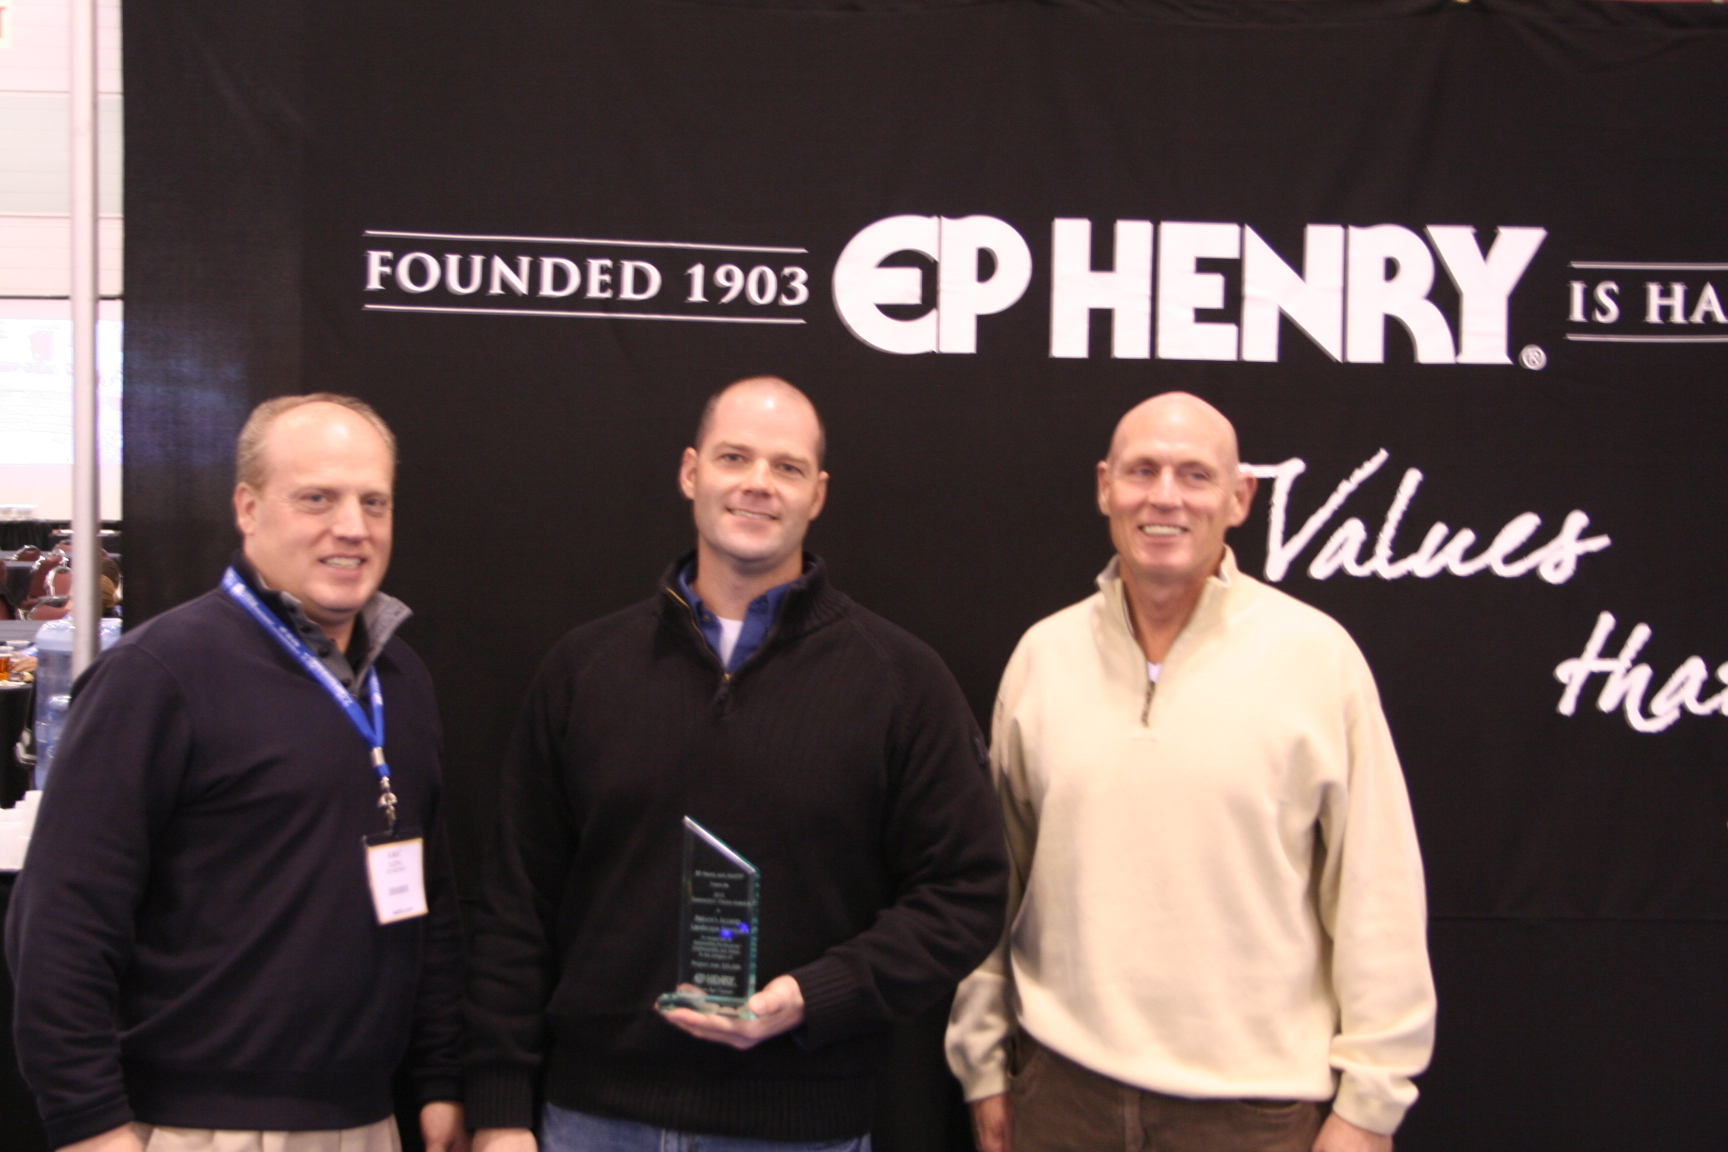 Winner Travis Breininger of Nature's Accents with EP Henry representatives